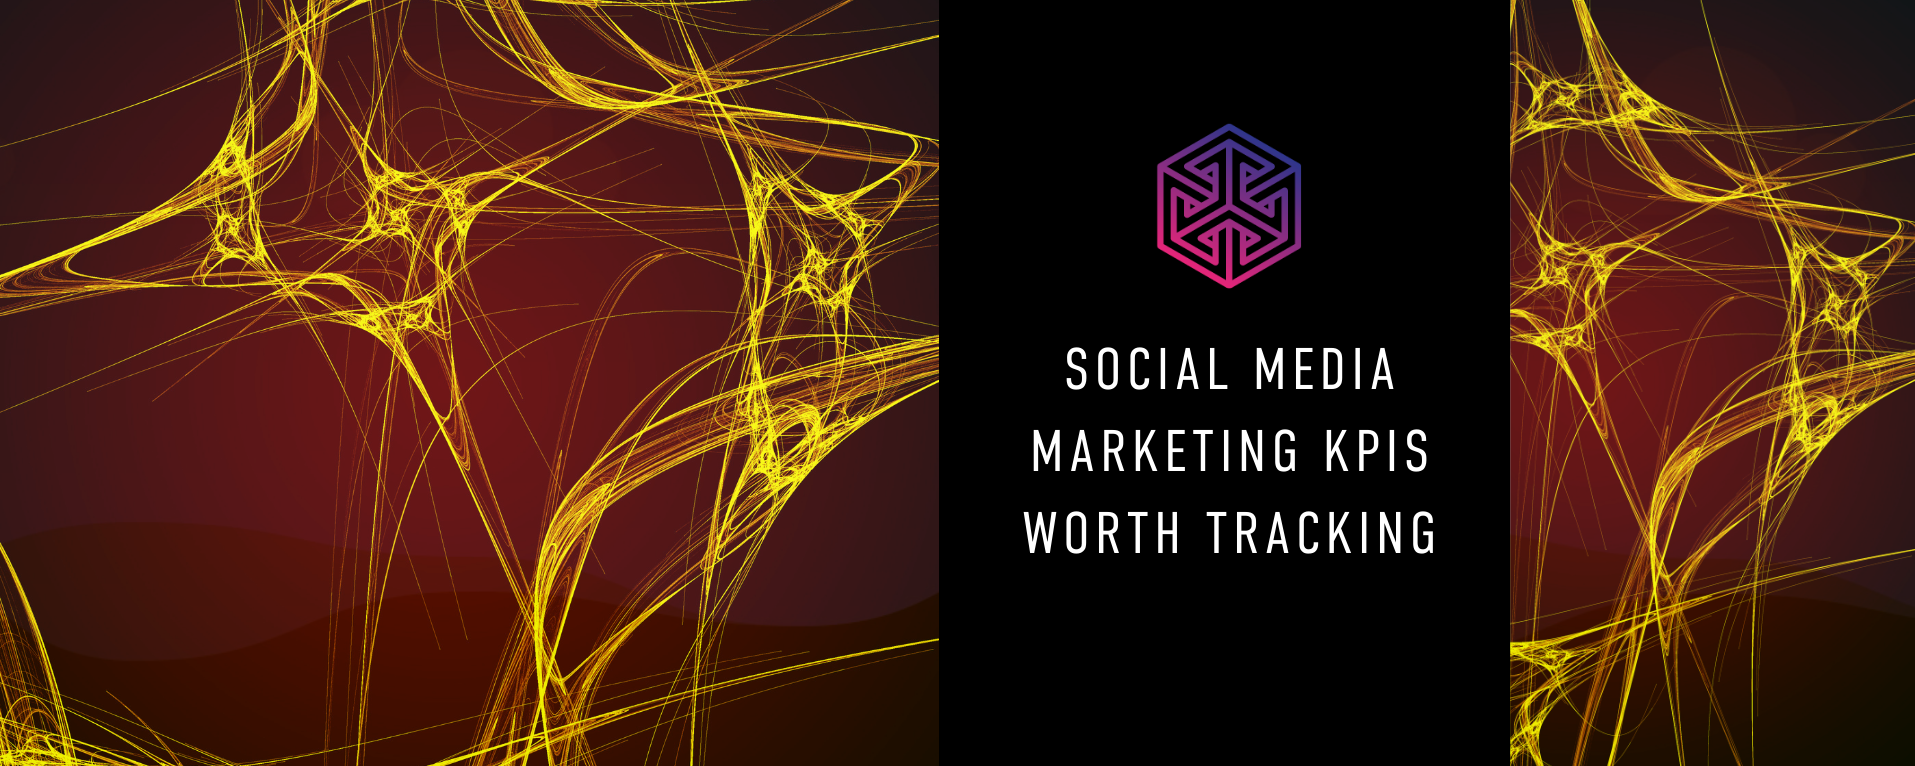 Social Media Marketing KPIs Worth Tracking. Tribe of Brands Blog.